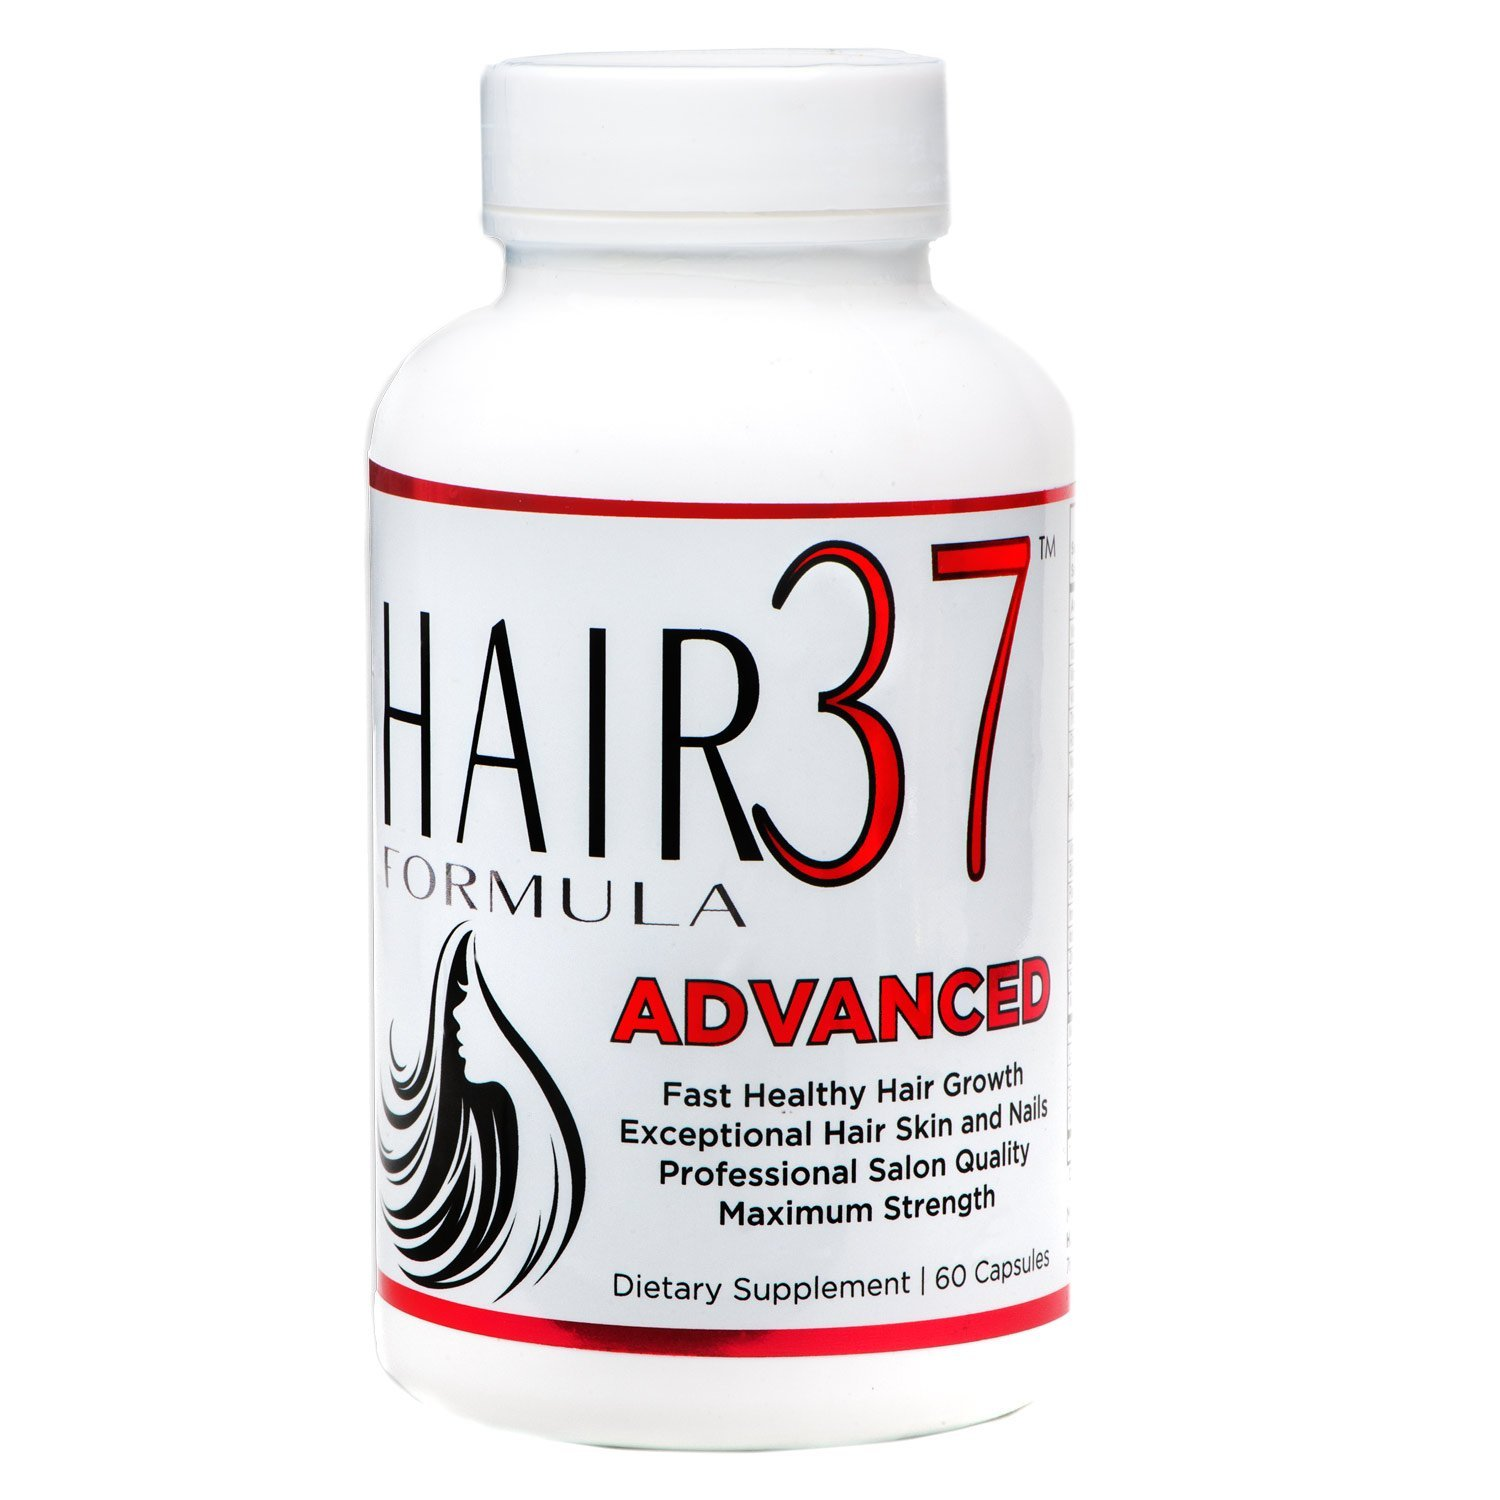 Get Extraordinary Hair Growth Vitamins for Women Supplements for Fast Grow Have Long Strong Thicker Hair that is Beautiful Shiny and Silky - See Visible Results and have a New Look with Hair Formula